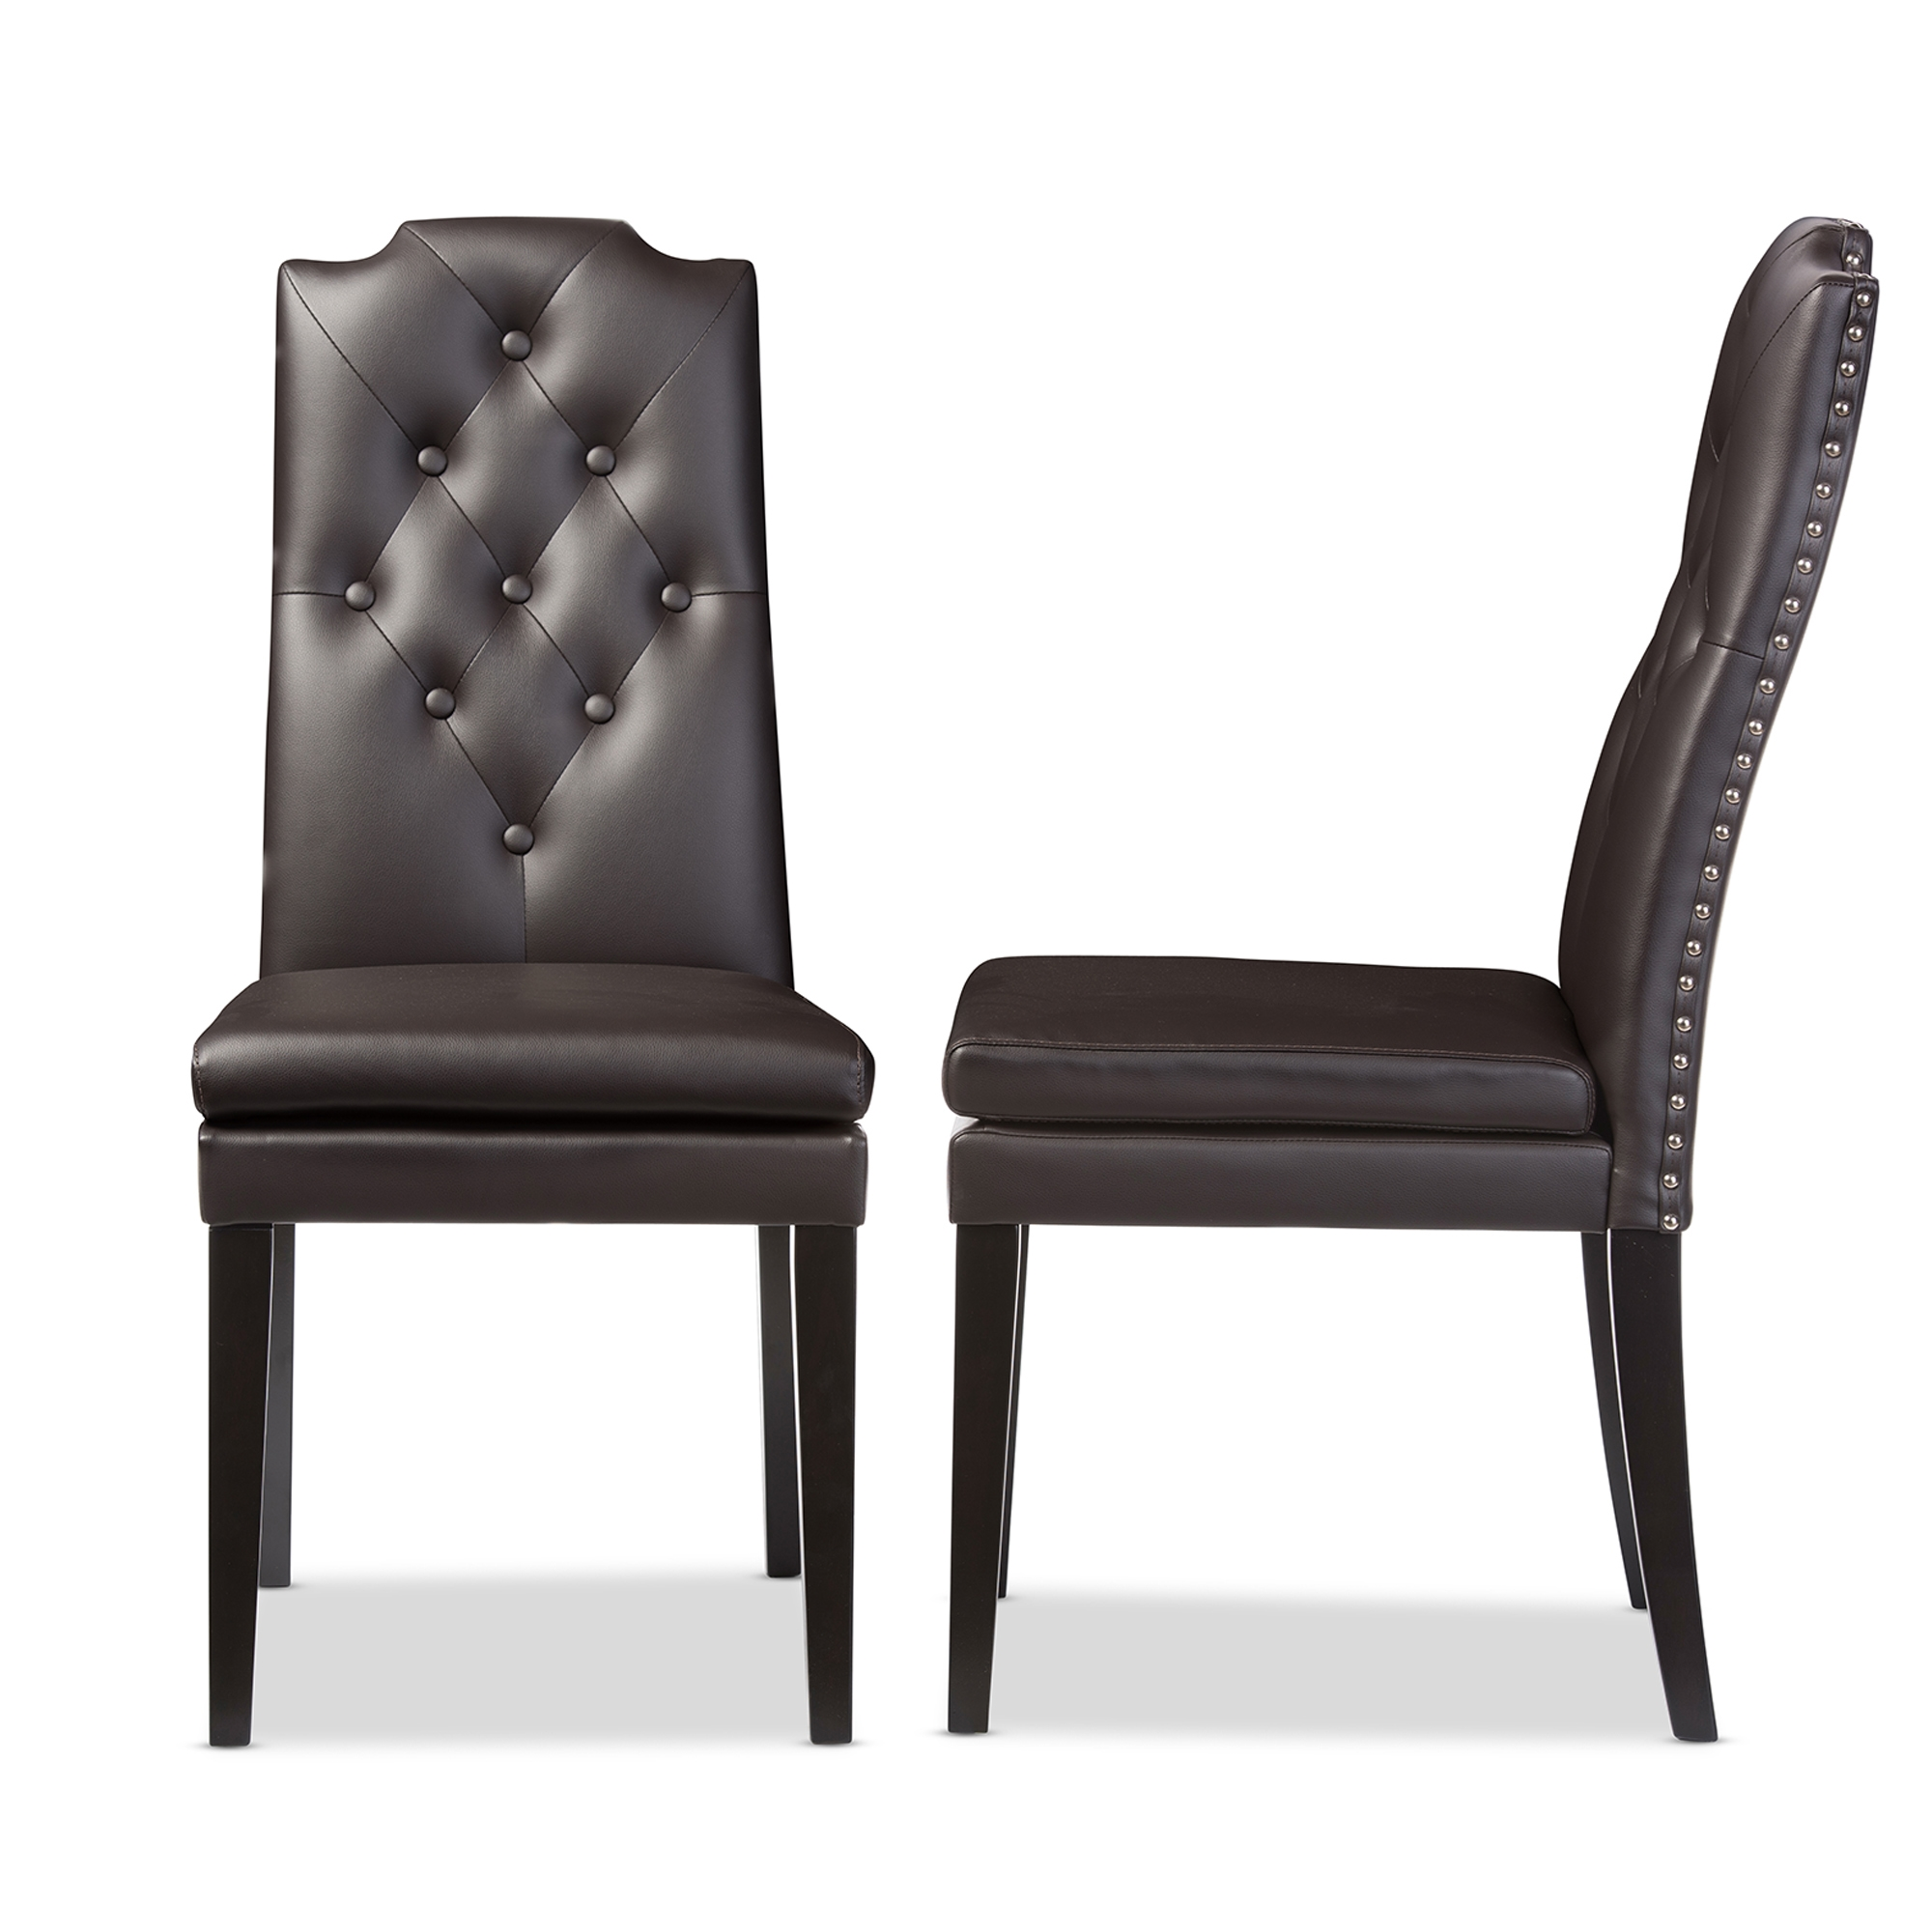 Baxton Studio Dylin Modern And Contemporary Dark Brown Faux Leather  Button Tufted Nail Heads Trim Dining Chair